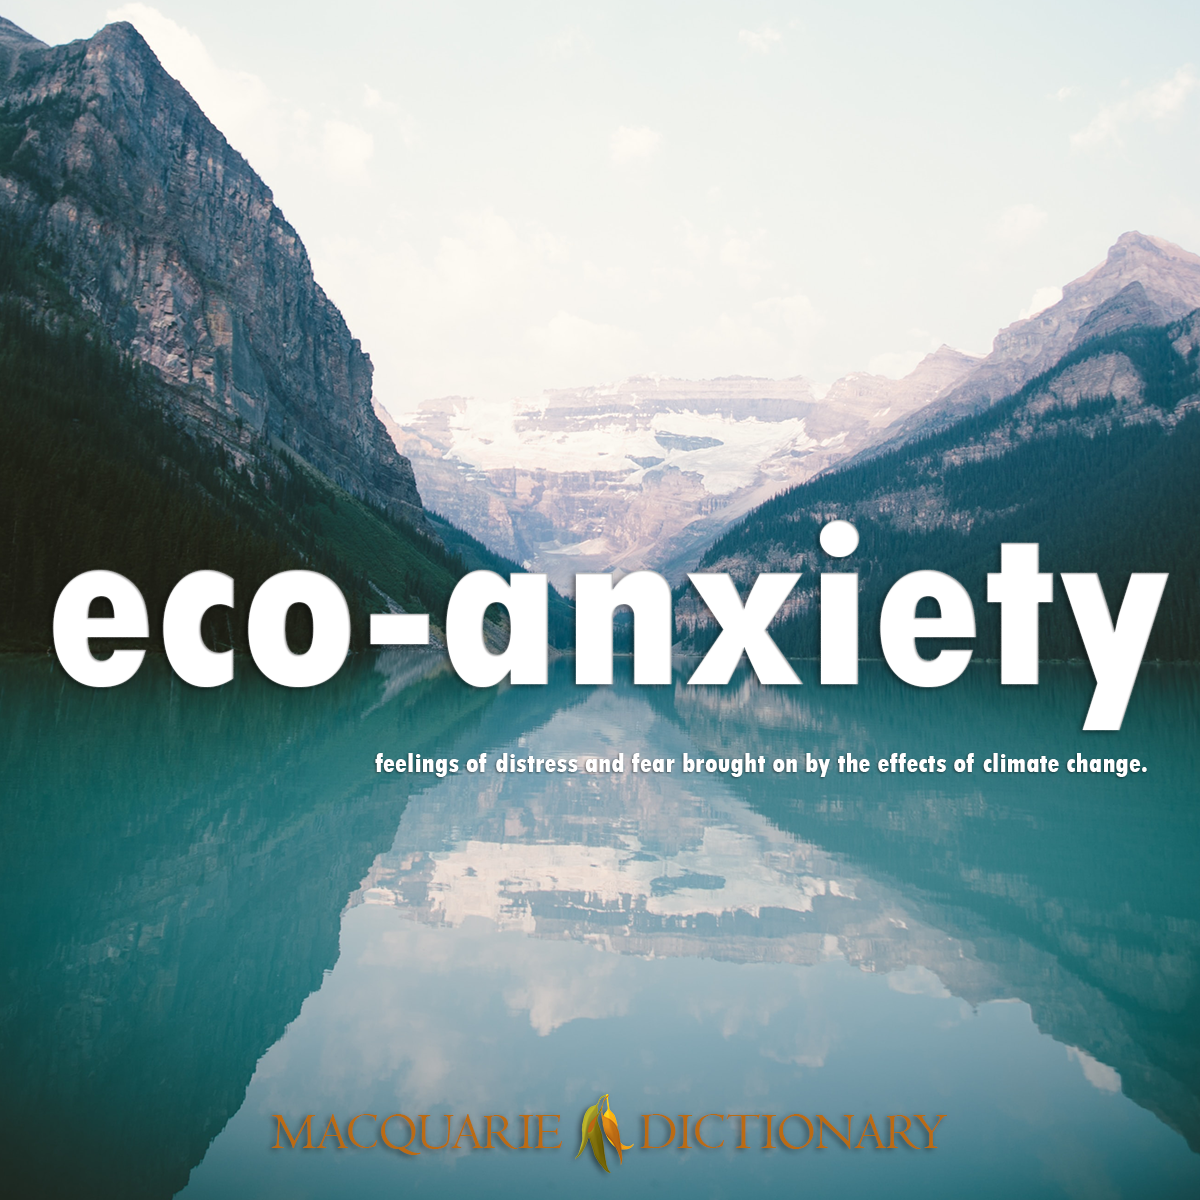 Image of Word of the Year Macquarie Dictionary eco-anxiety feelings of distress and fear brought on by the effects of climate change.